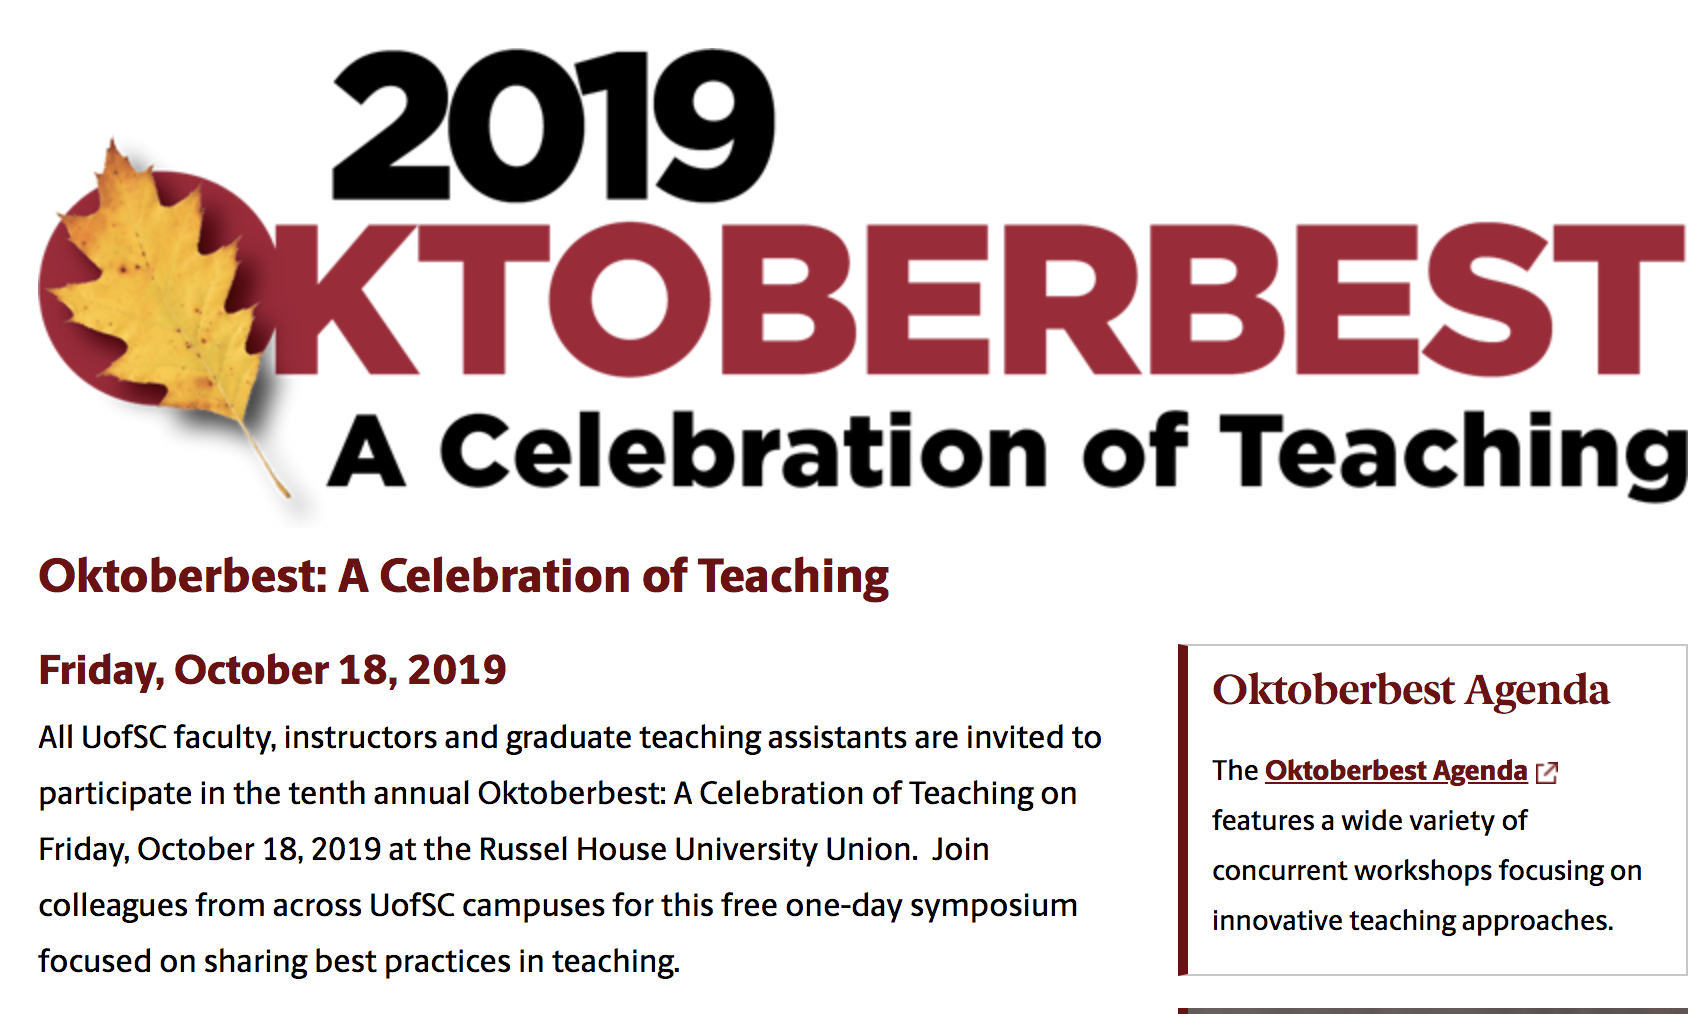 "A banner with the text ""Oktoberbest 2019"" and the subtext ""A Celebration of Teaching"" is followed by a heading that includes that text and subtext, as well as a paragraph that lists the full title of the event, the date, and other relevant information, making the image decorative."